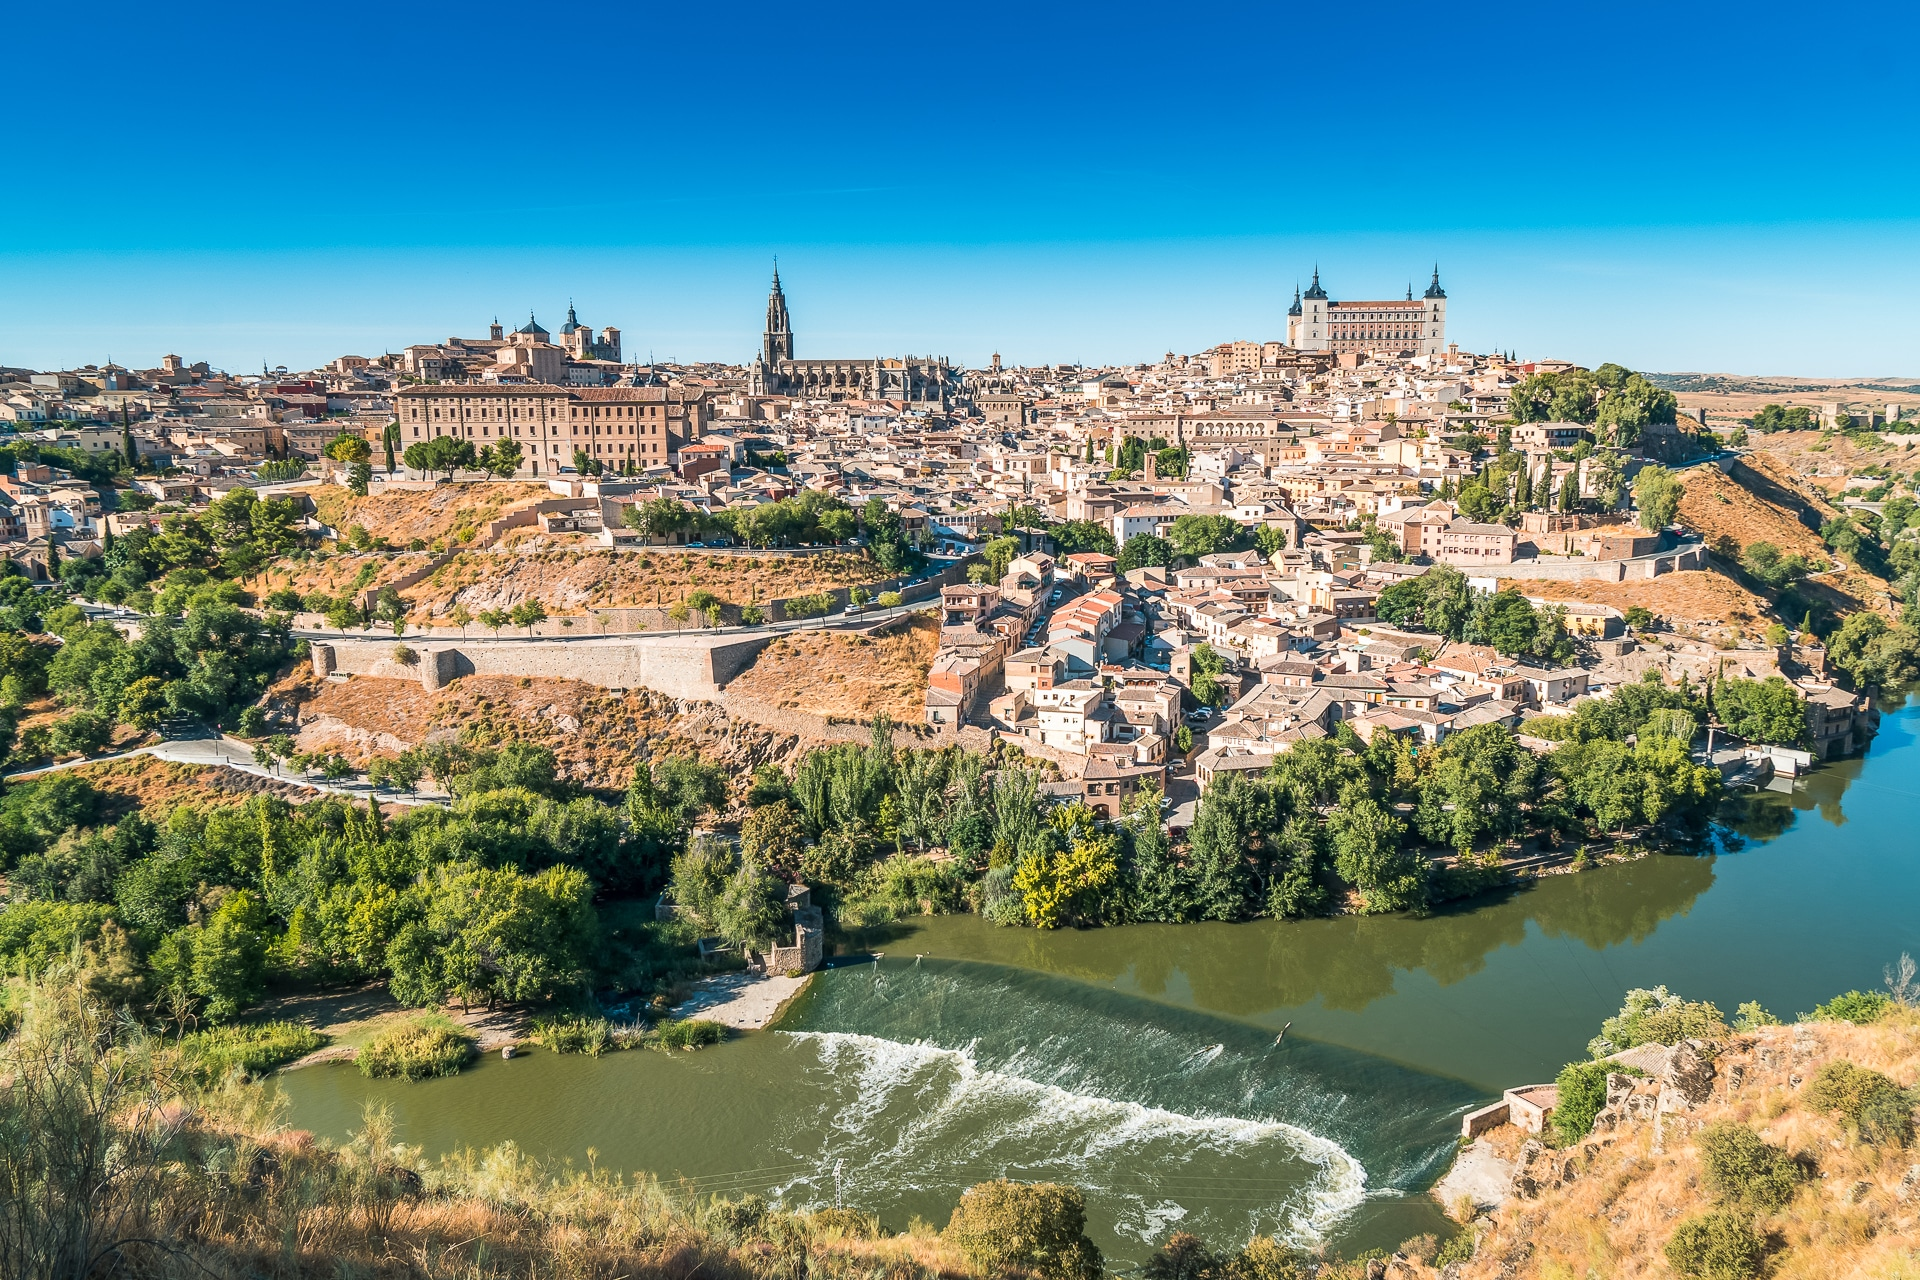 Excursions and tours in Toledo, Spain